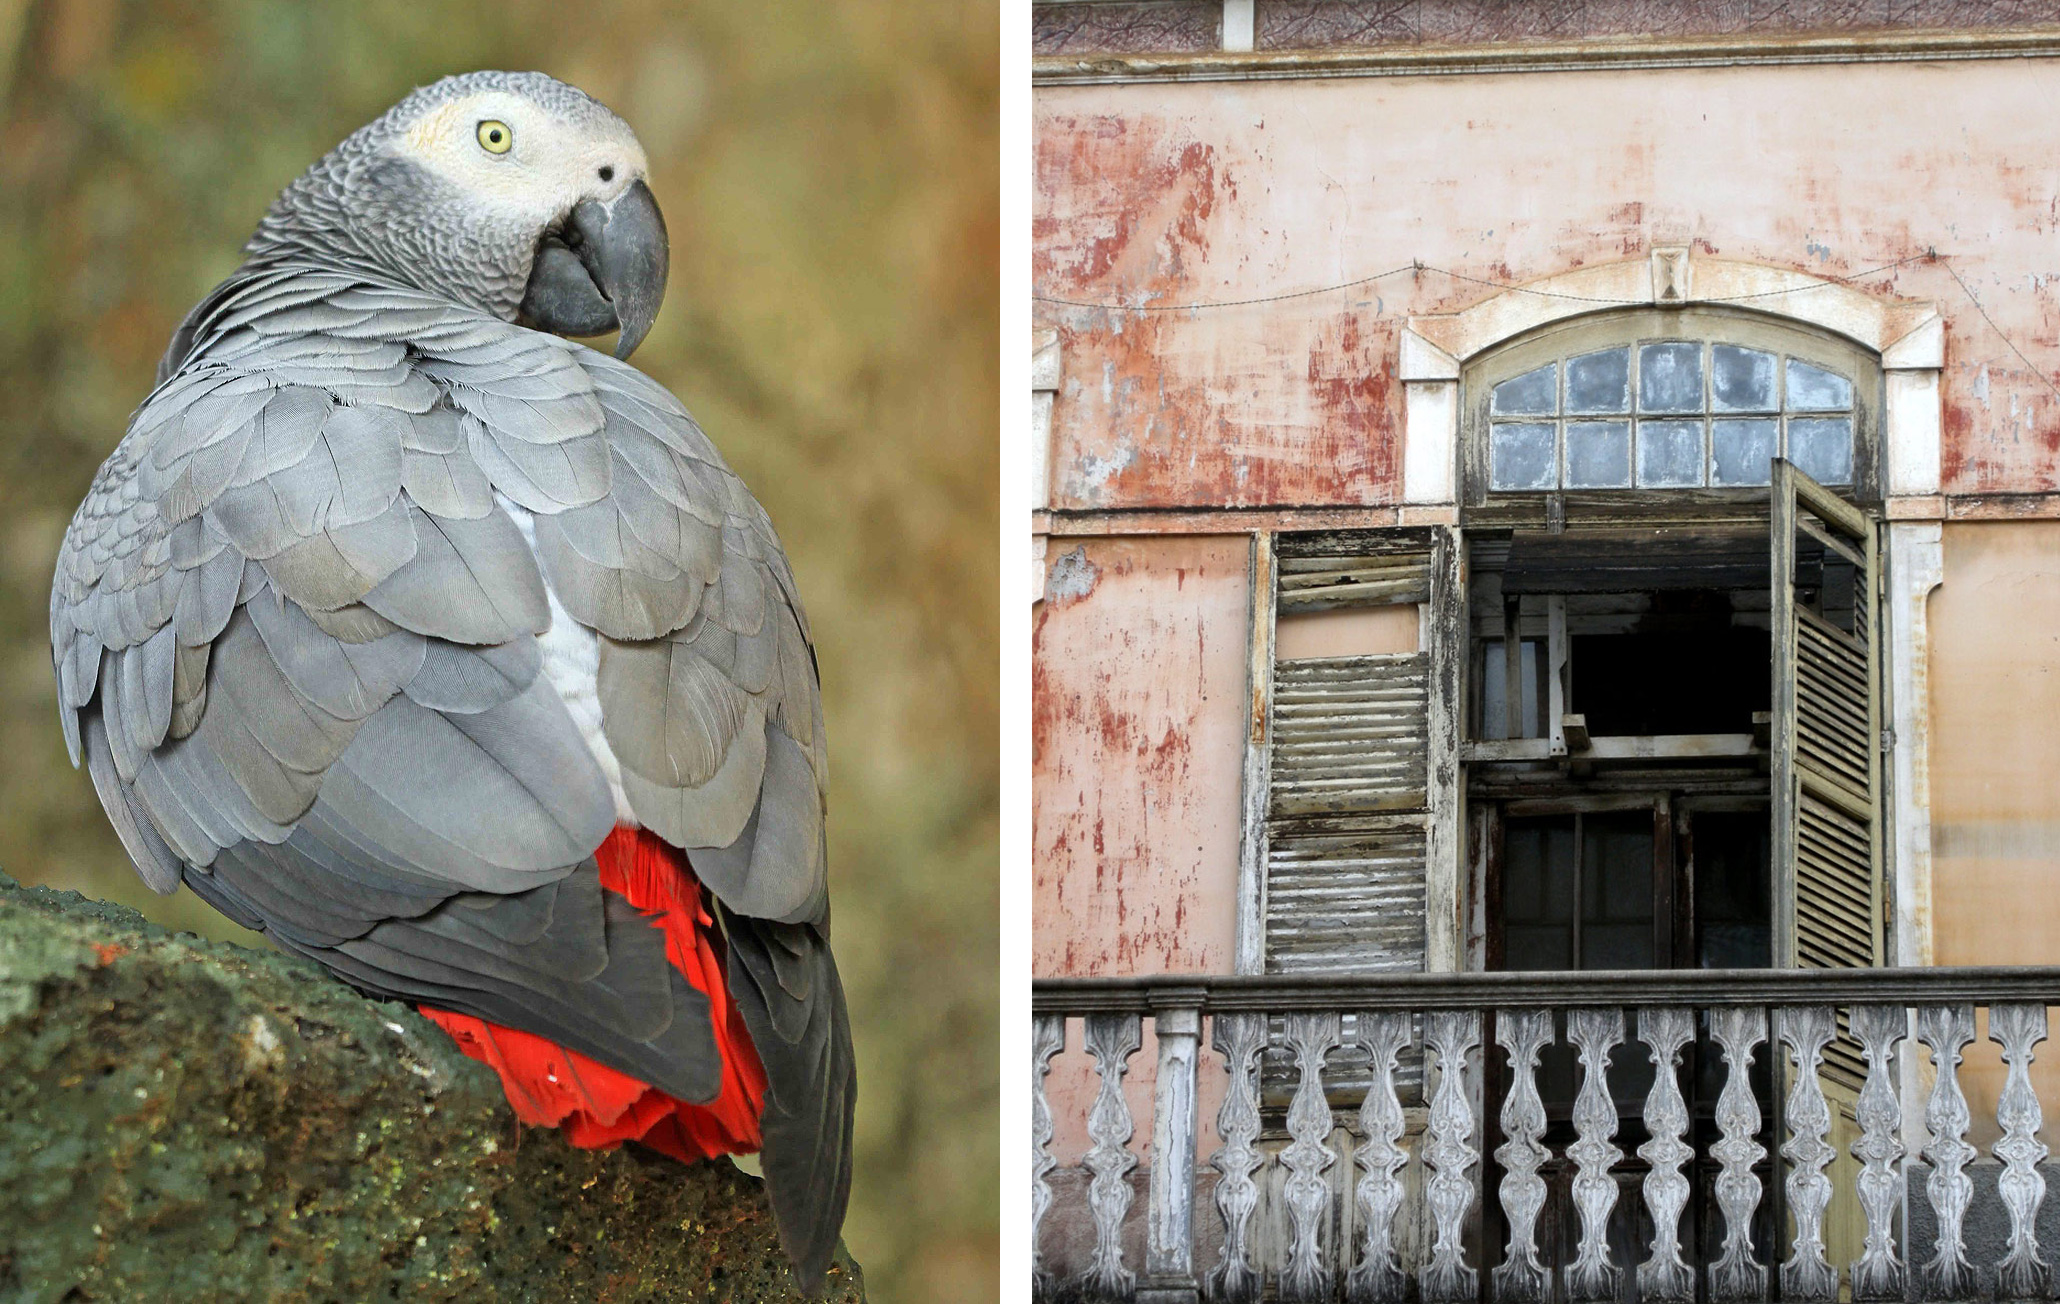 Principe-Gray-Parrot and balcony -Christian-Boix